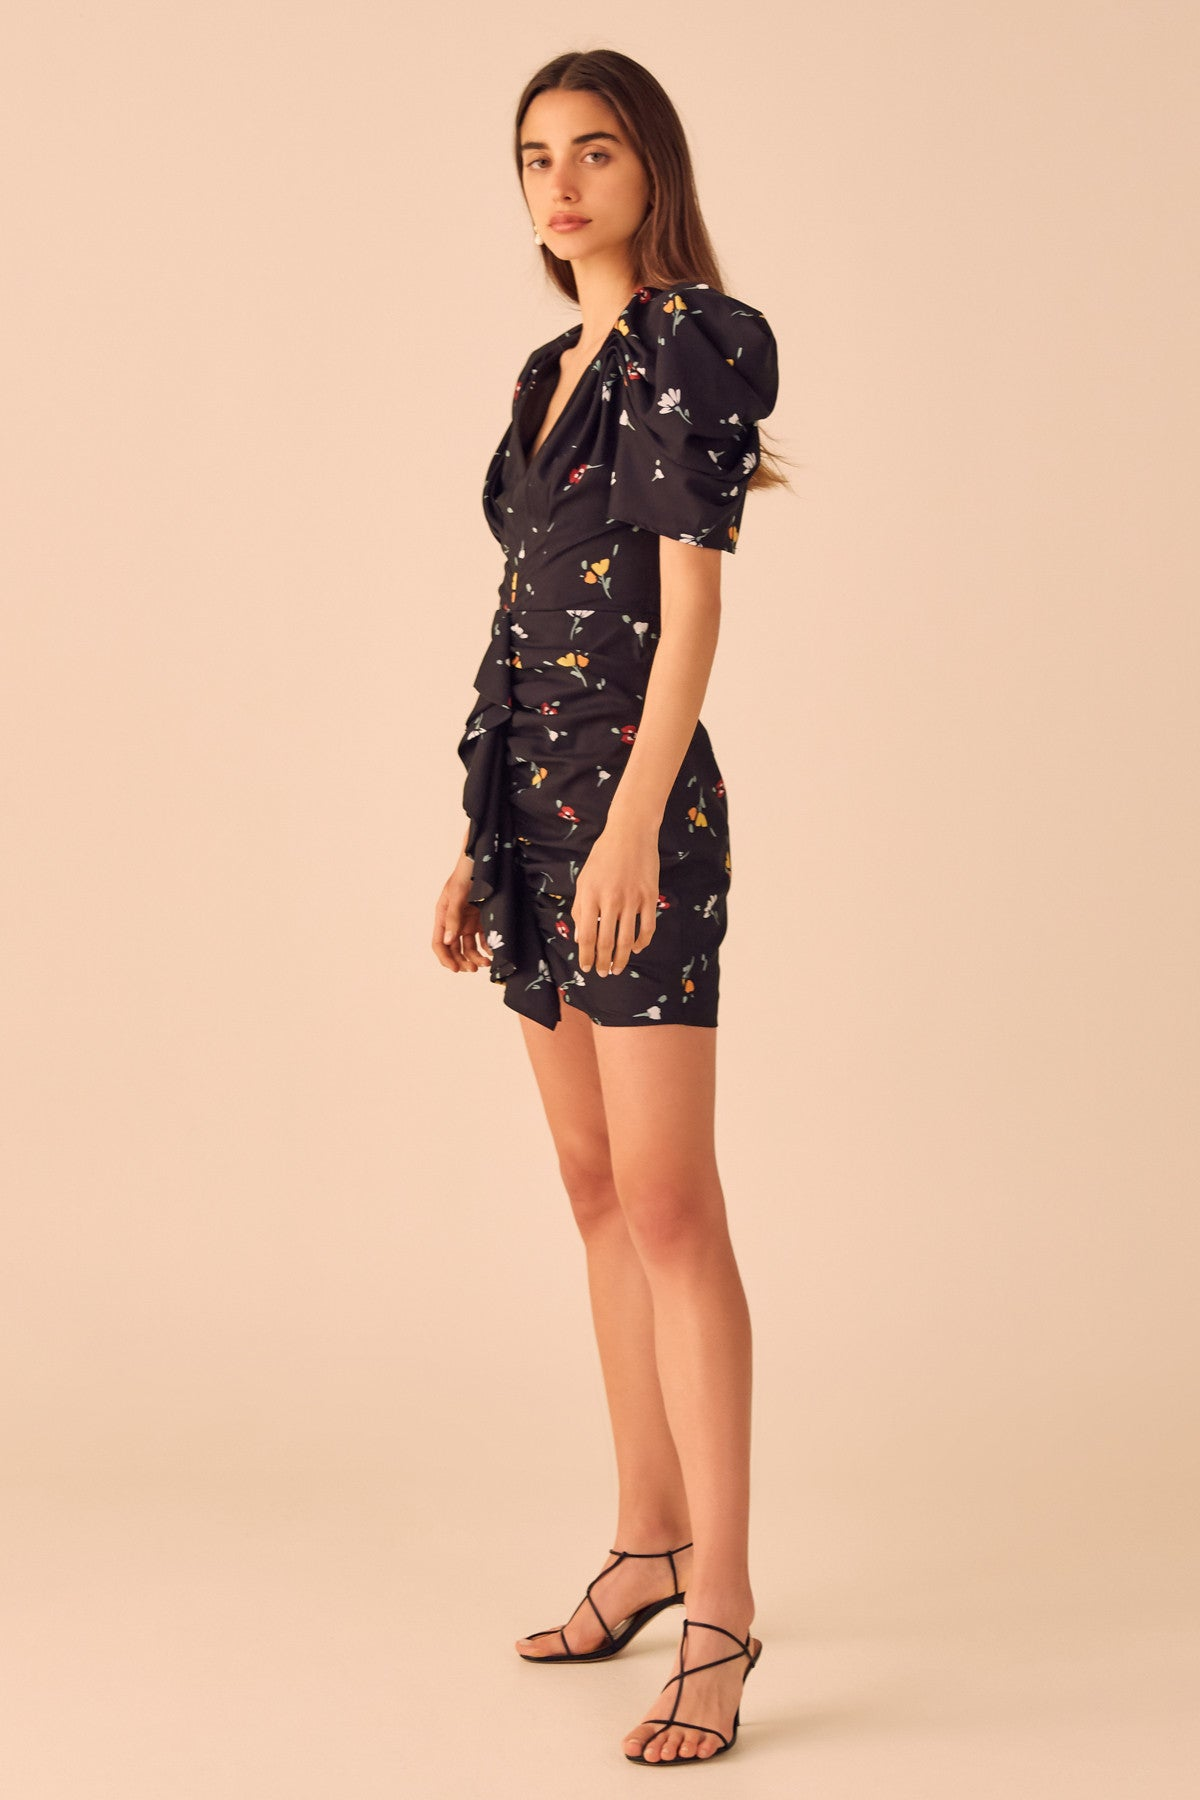 VICES SHORT SLEEVE DRESS black scattered floral